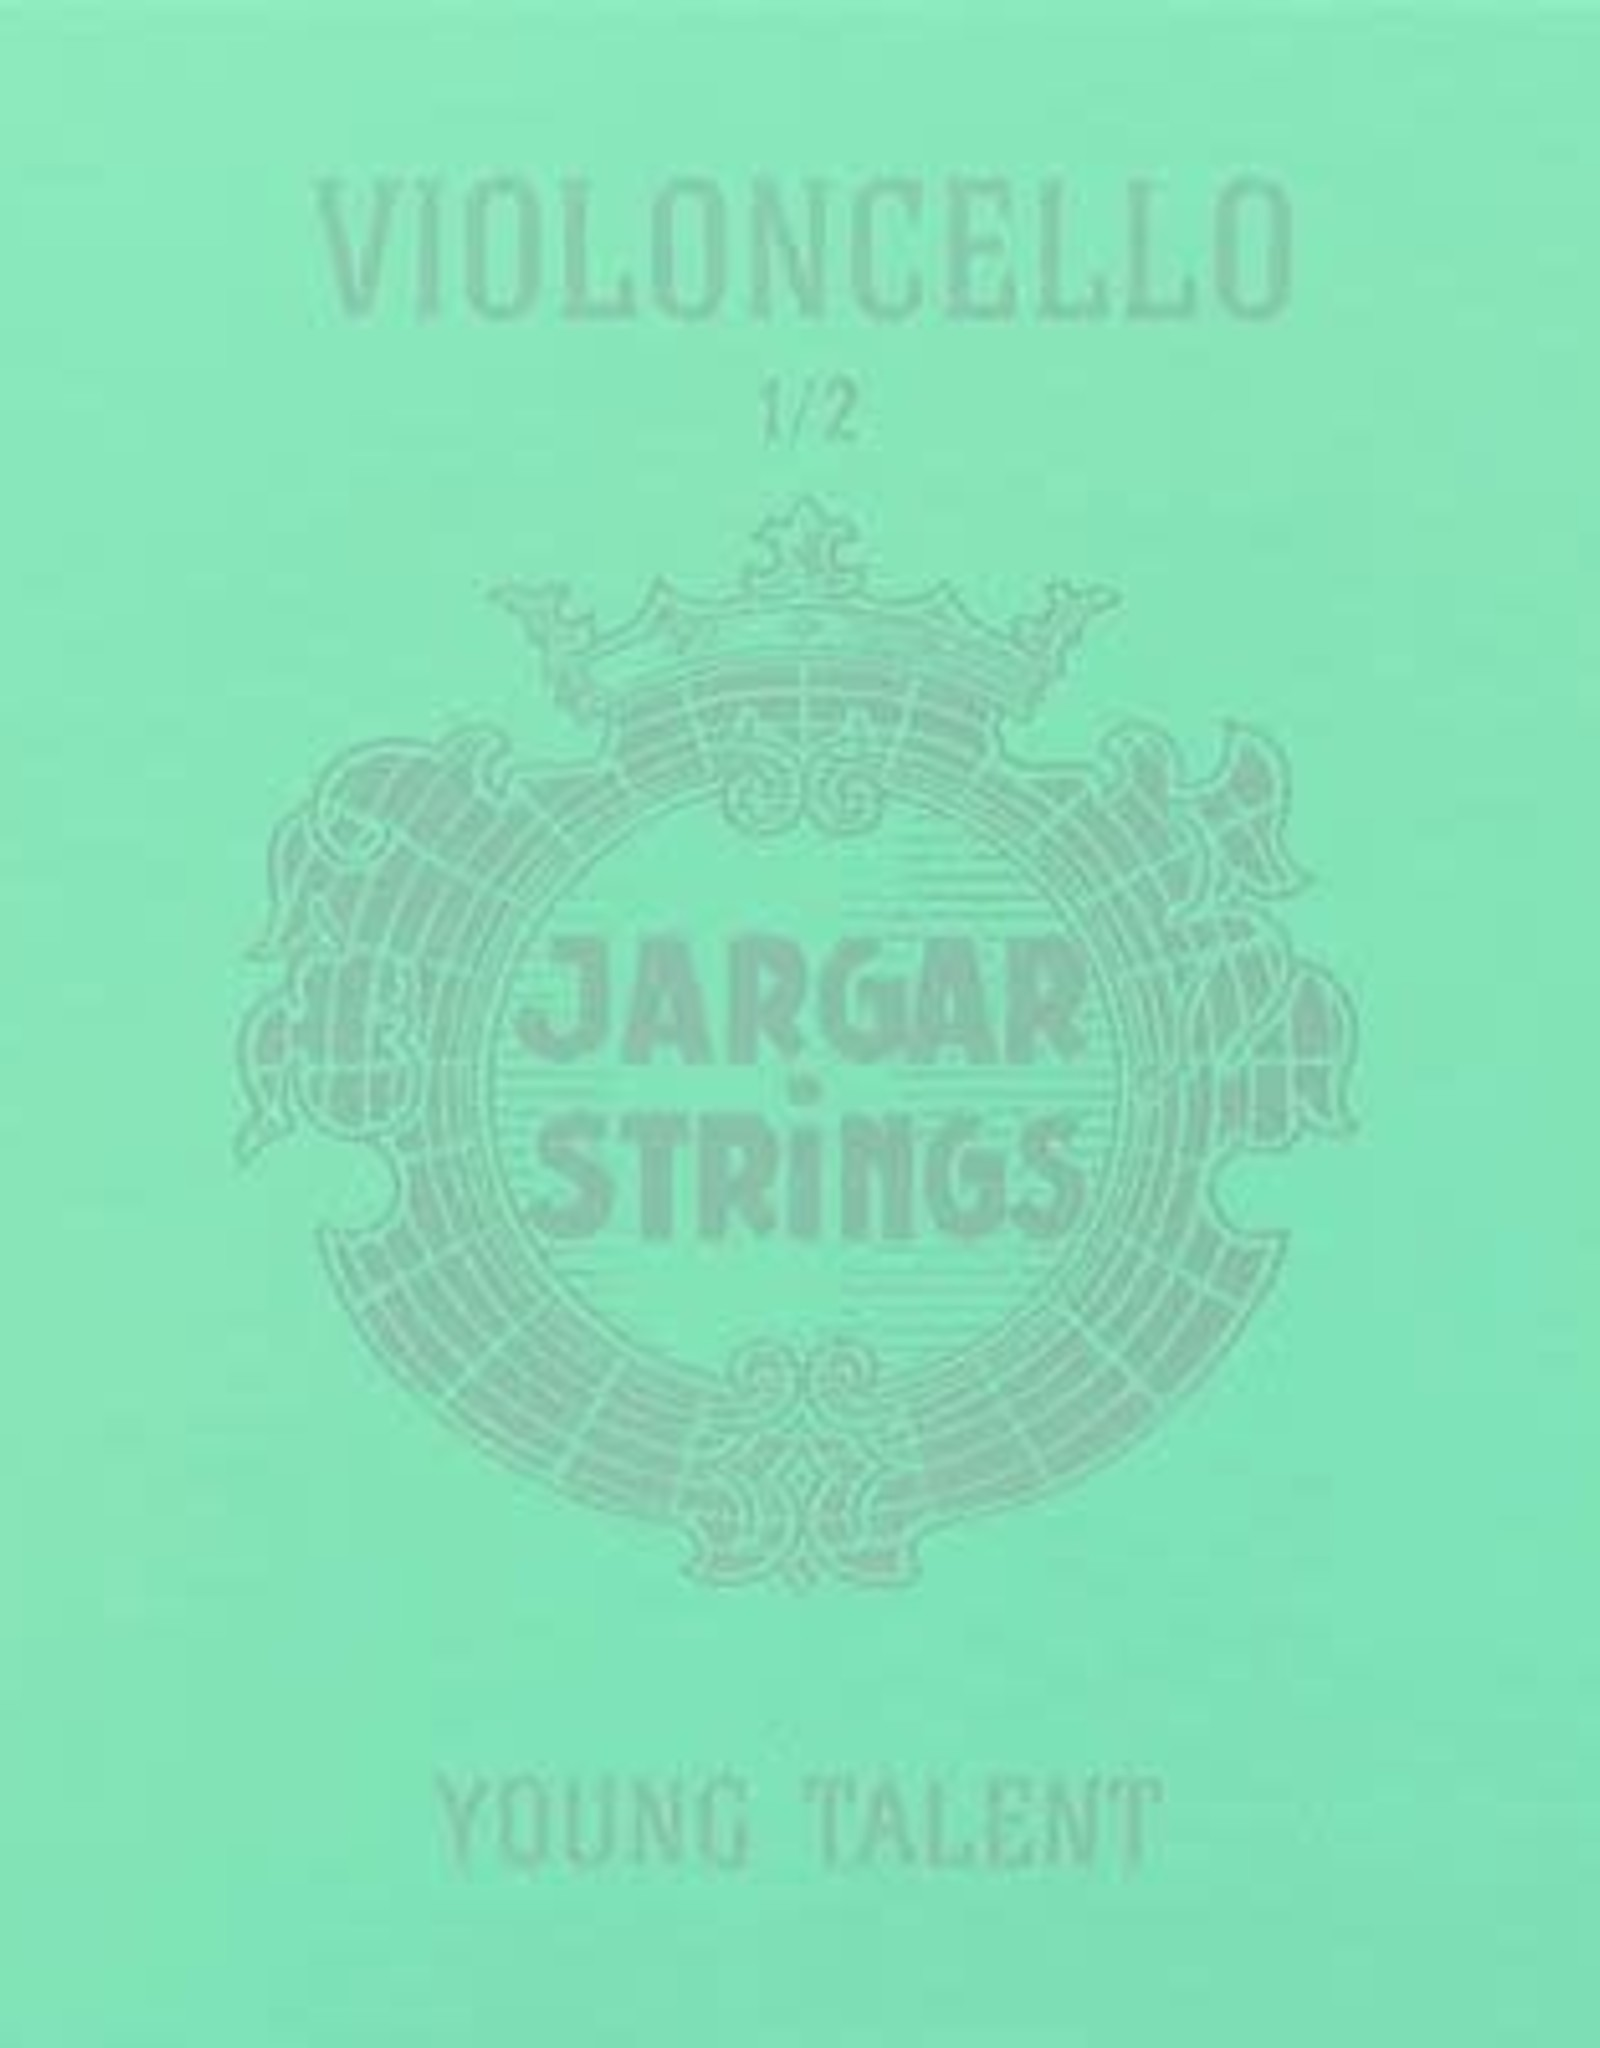 JARGAR Young Talent snarenset cello, 1/2